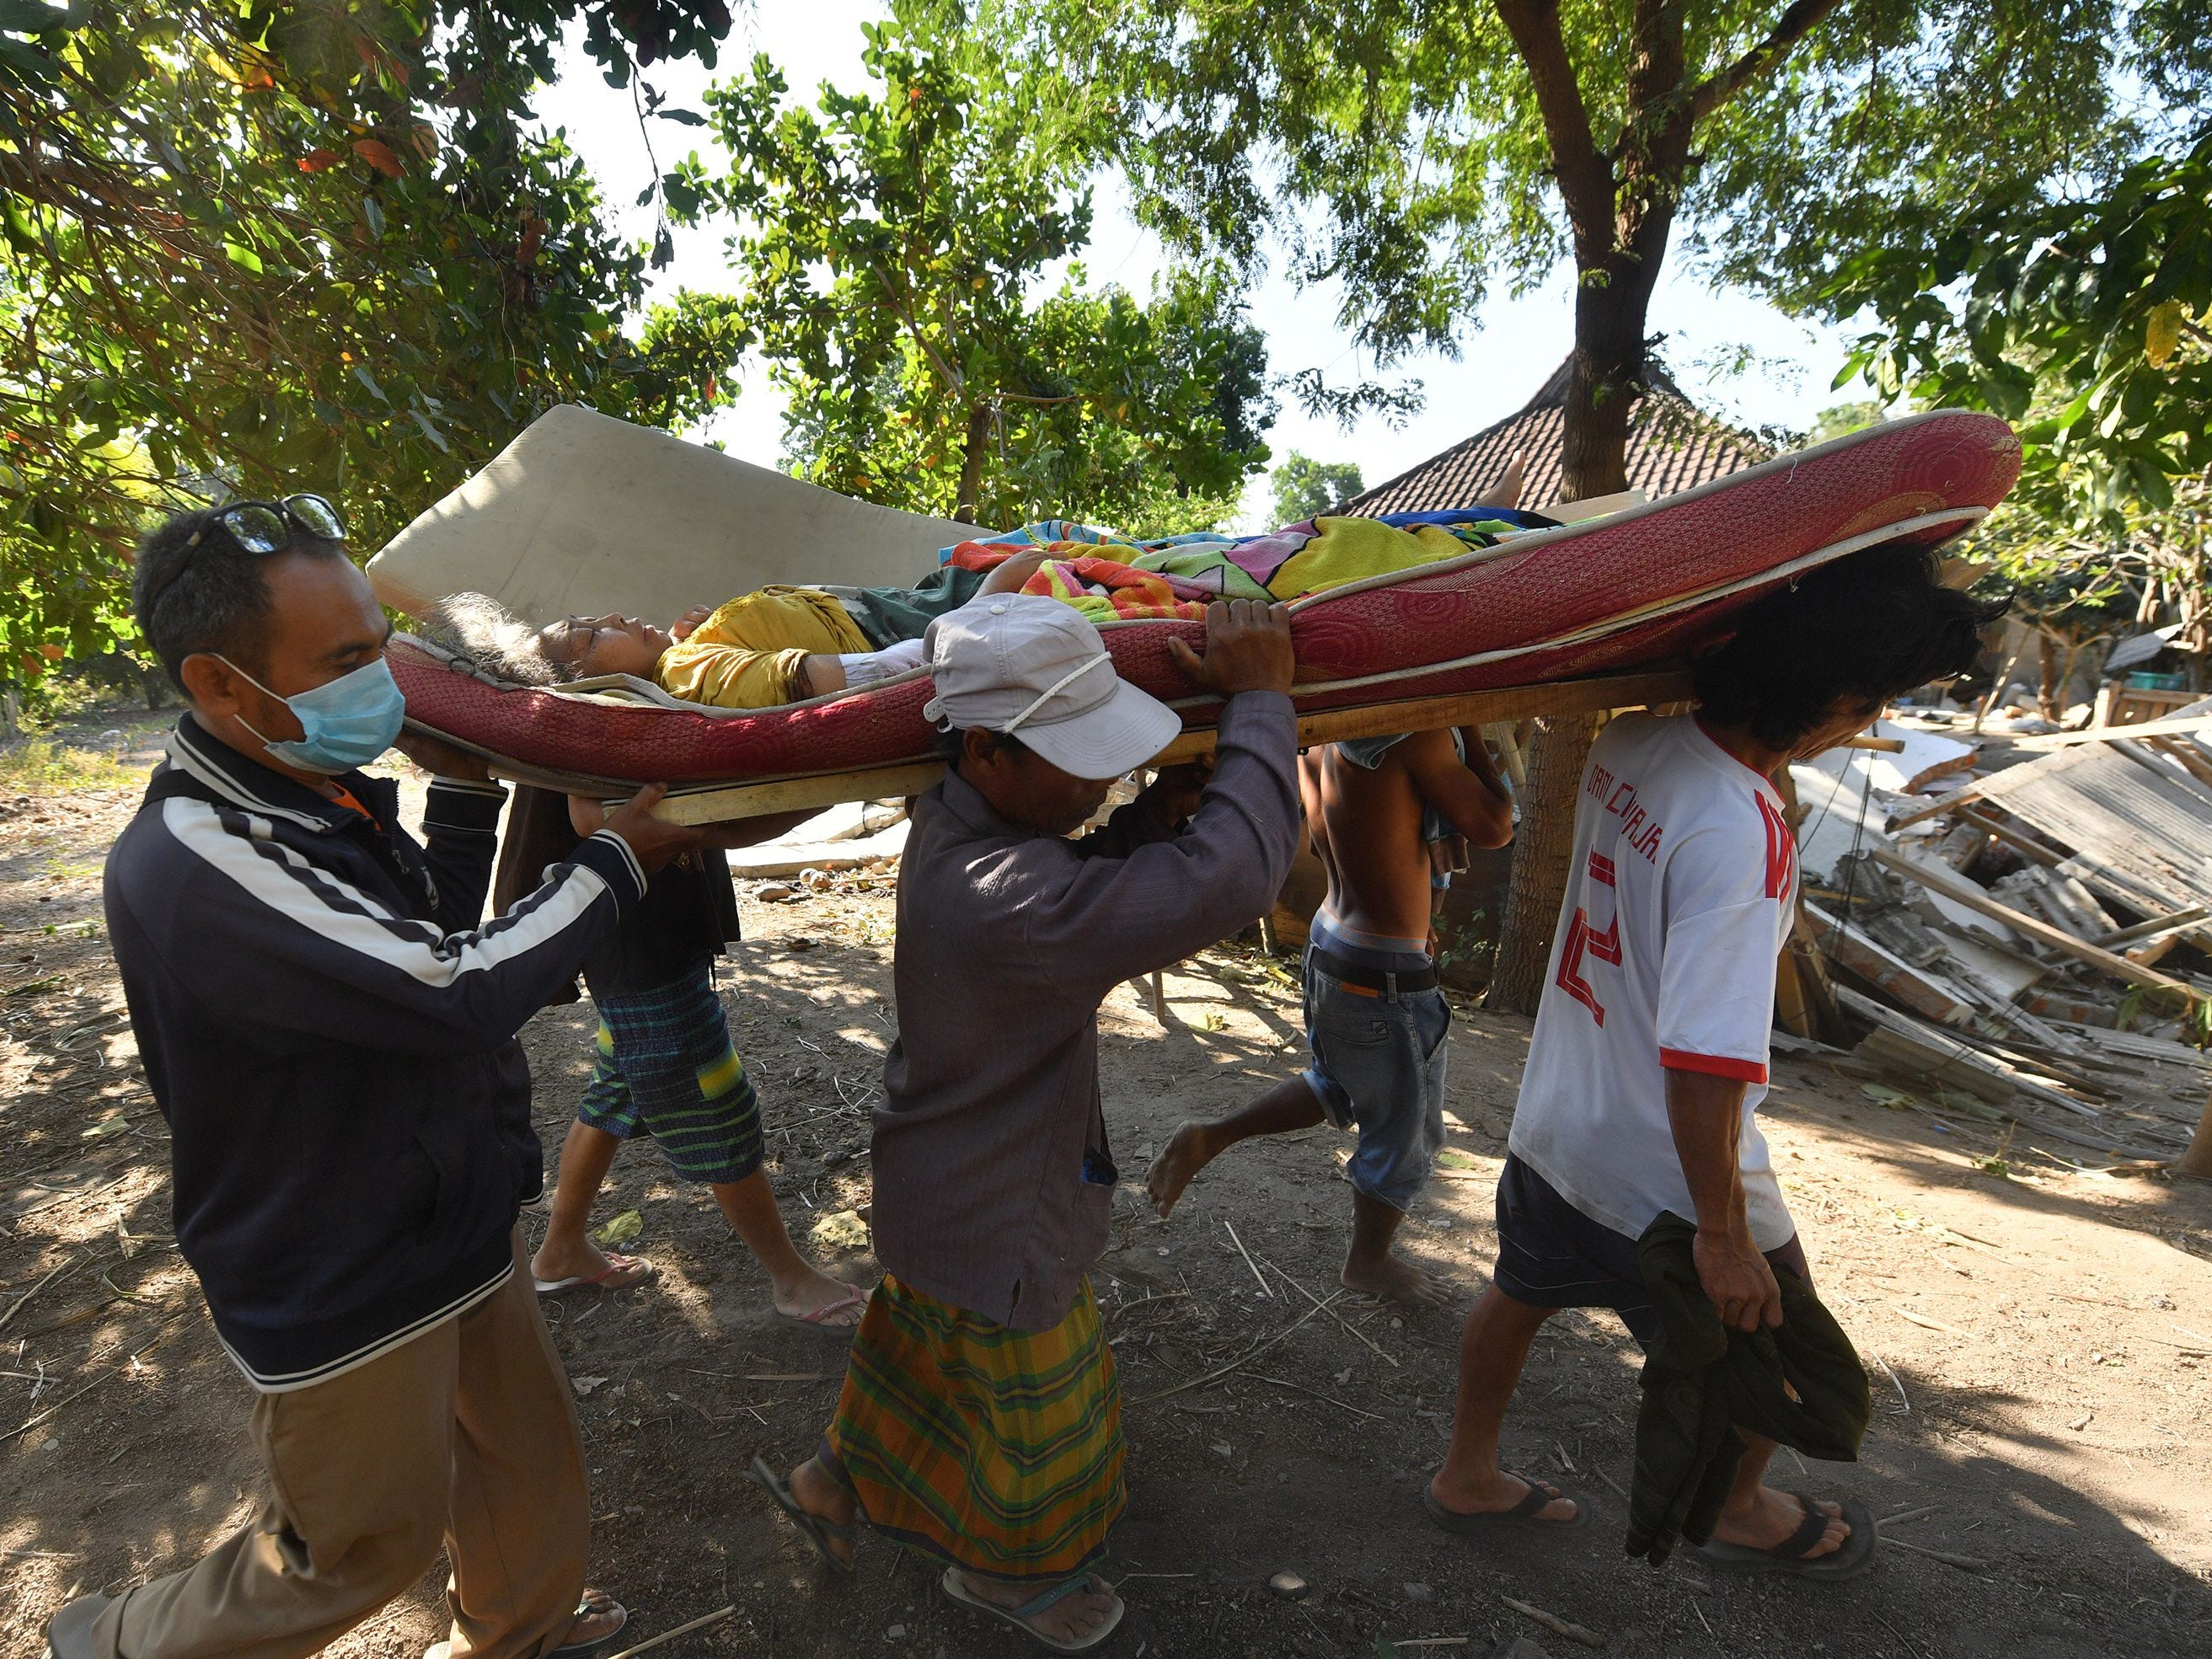 Aug. 6, 2018: Indonesian people carry an injured woman in Pemenang, North Lombok the day after a 6.9 magnitude earthquake struck the area. Indonesia on Aug. 6 sent rescuers fanning out across the holiday island of Lombok and evacuated more than 2,000 tourists after a powerful earthquake killed at least 98 people and damaged thousands of buildings.